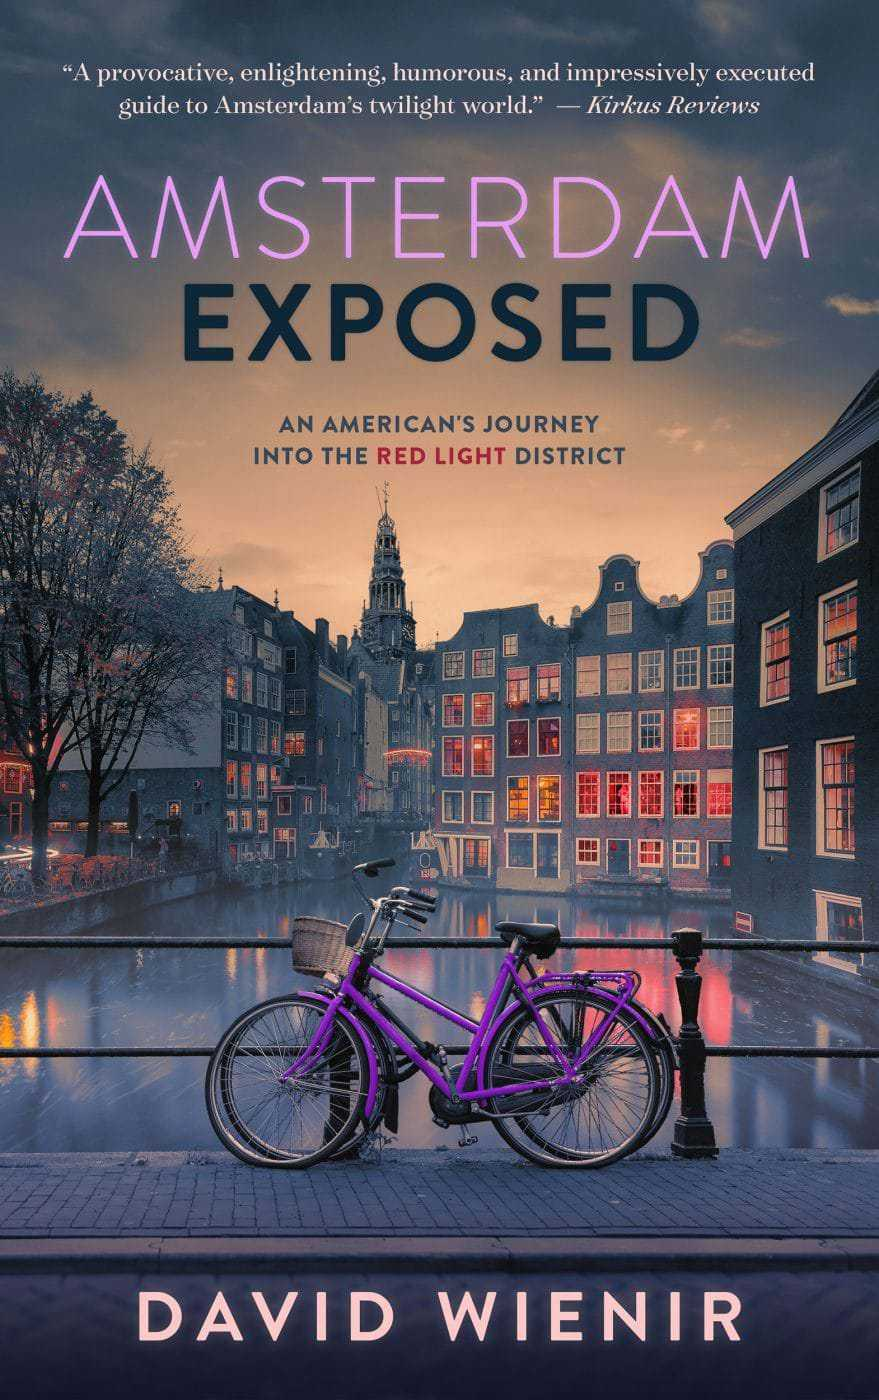 This is an excerpt from the book: Amsterdam Exposed, an American's journey into the red light district. By David Wienir.